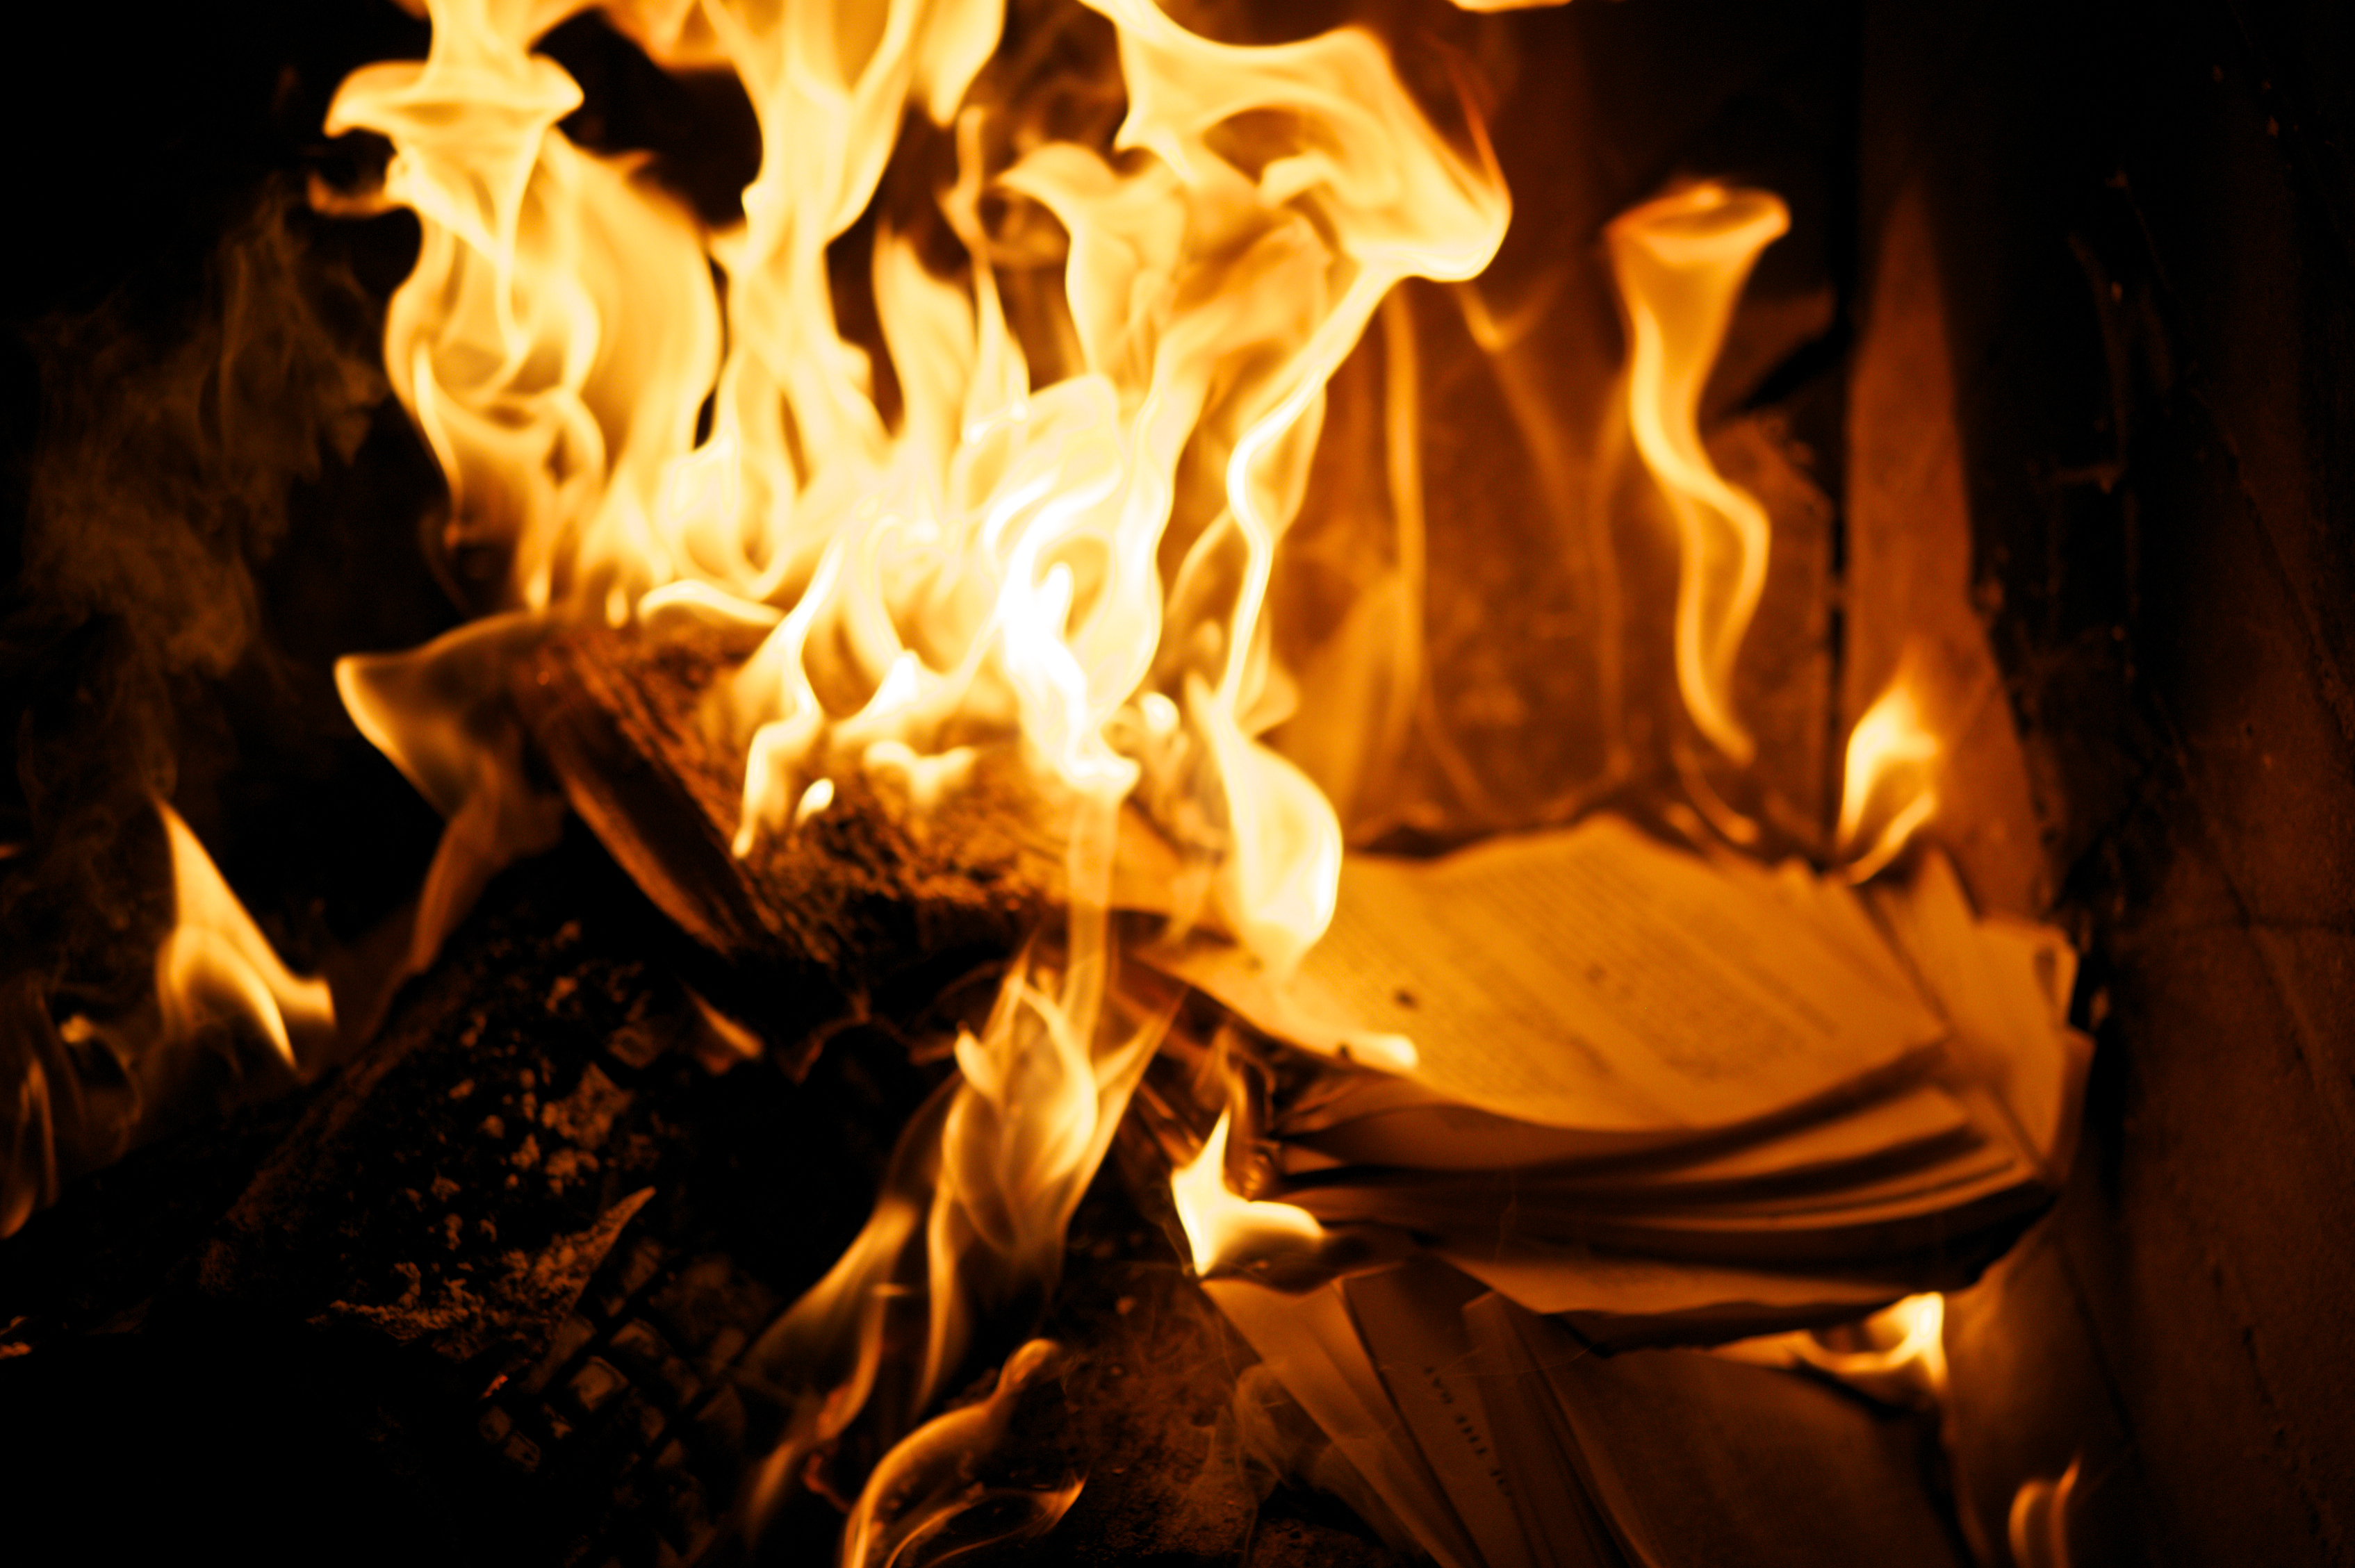 fire in 451 Get everything you need to know about fire in fahrenheit 451 analysis, related quotes, timeline.